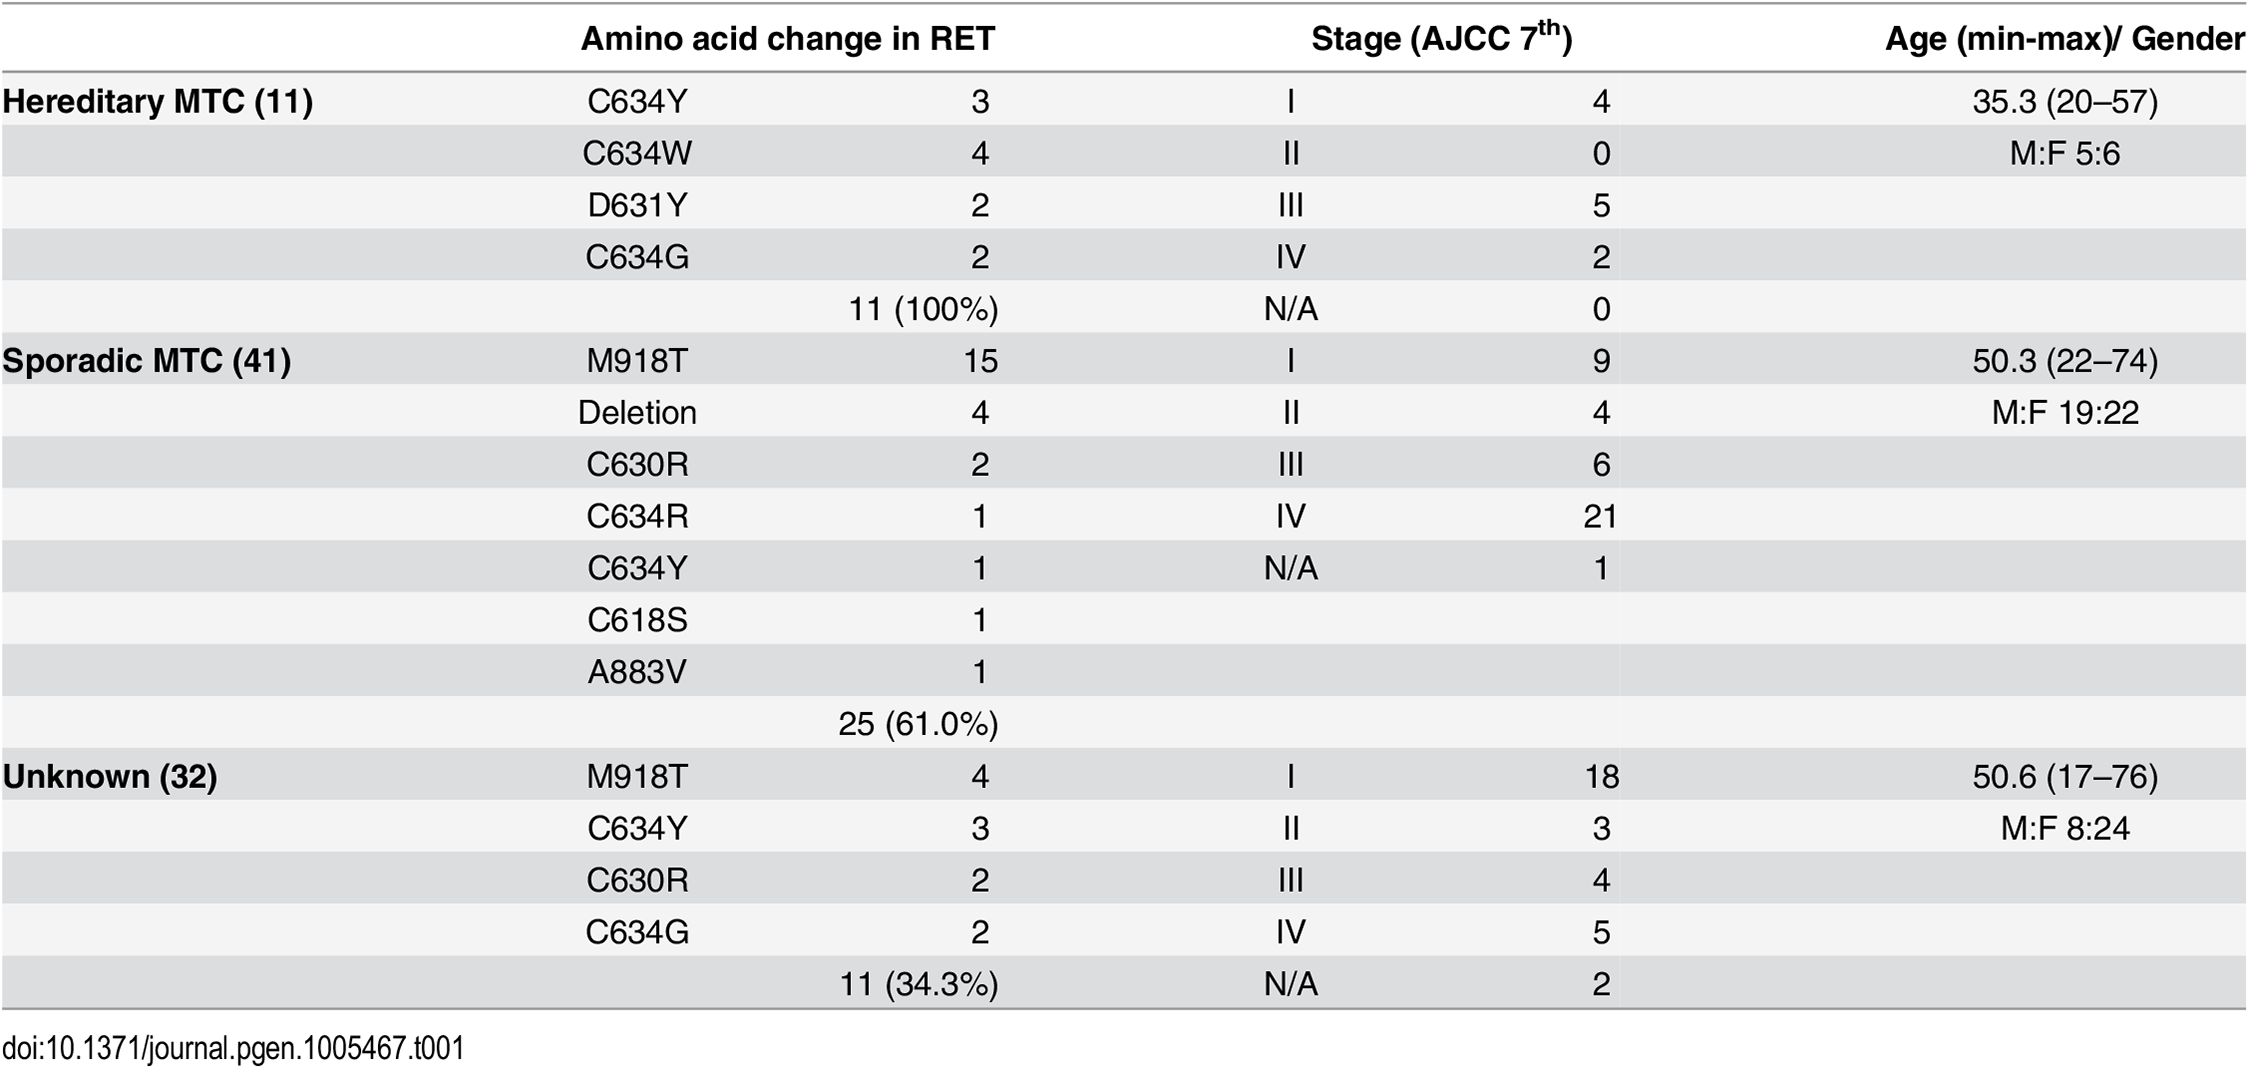 Demographic, pathologic and genetic characteristics of medullary thyroid cancer patients.